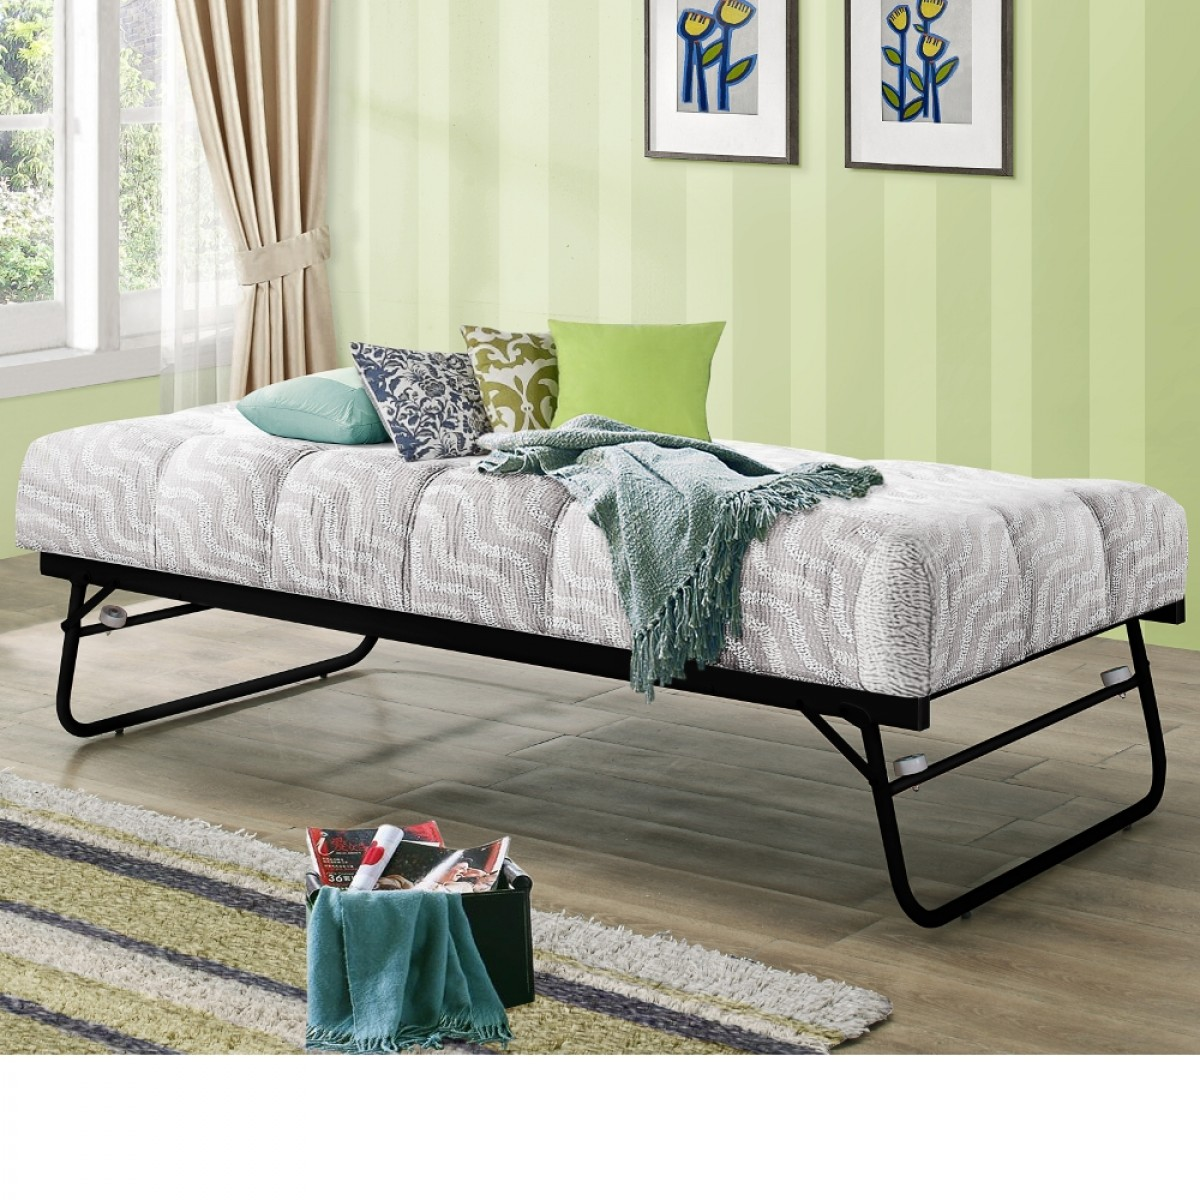 Trundle black guest bed